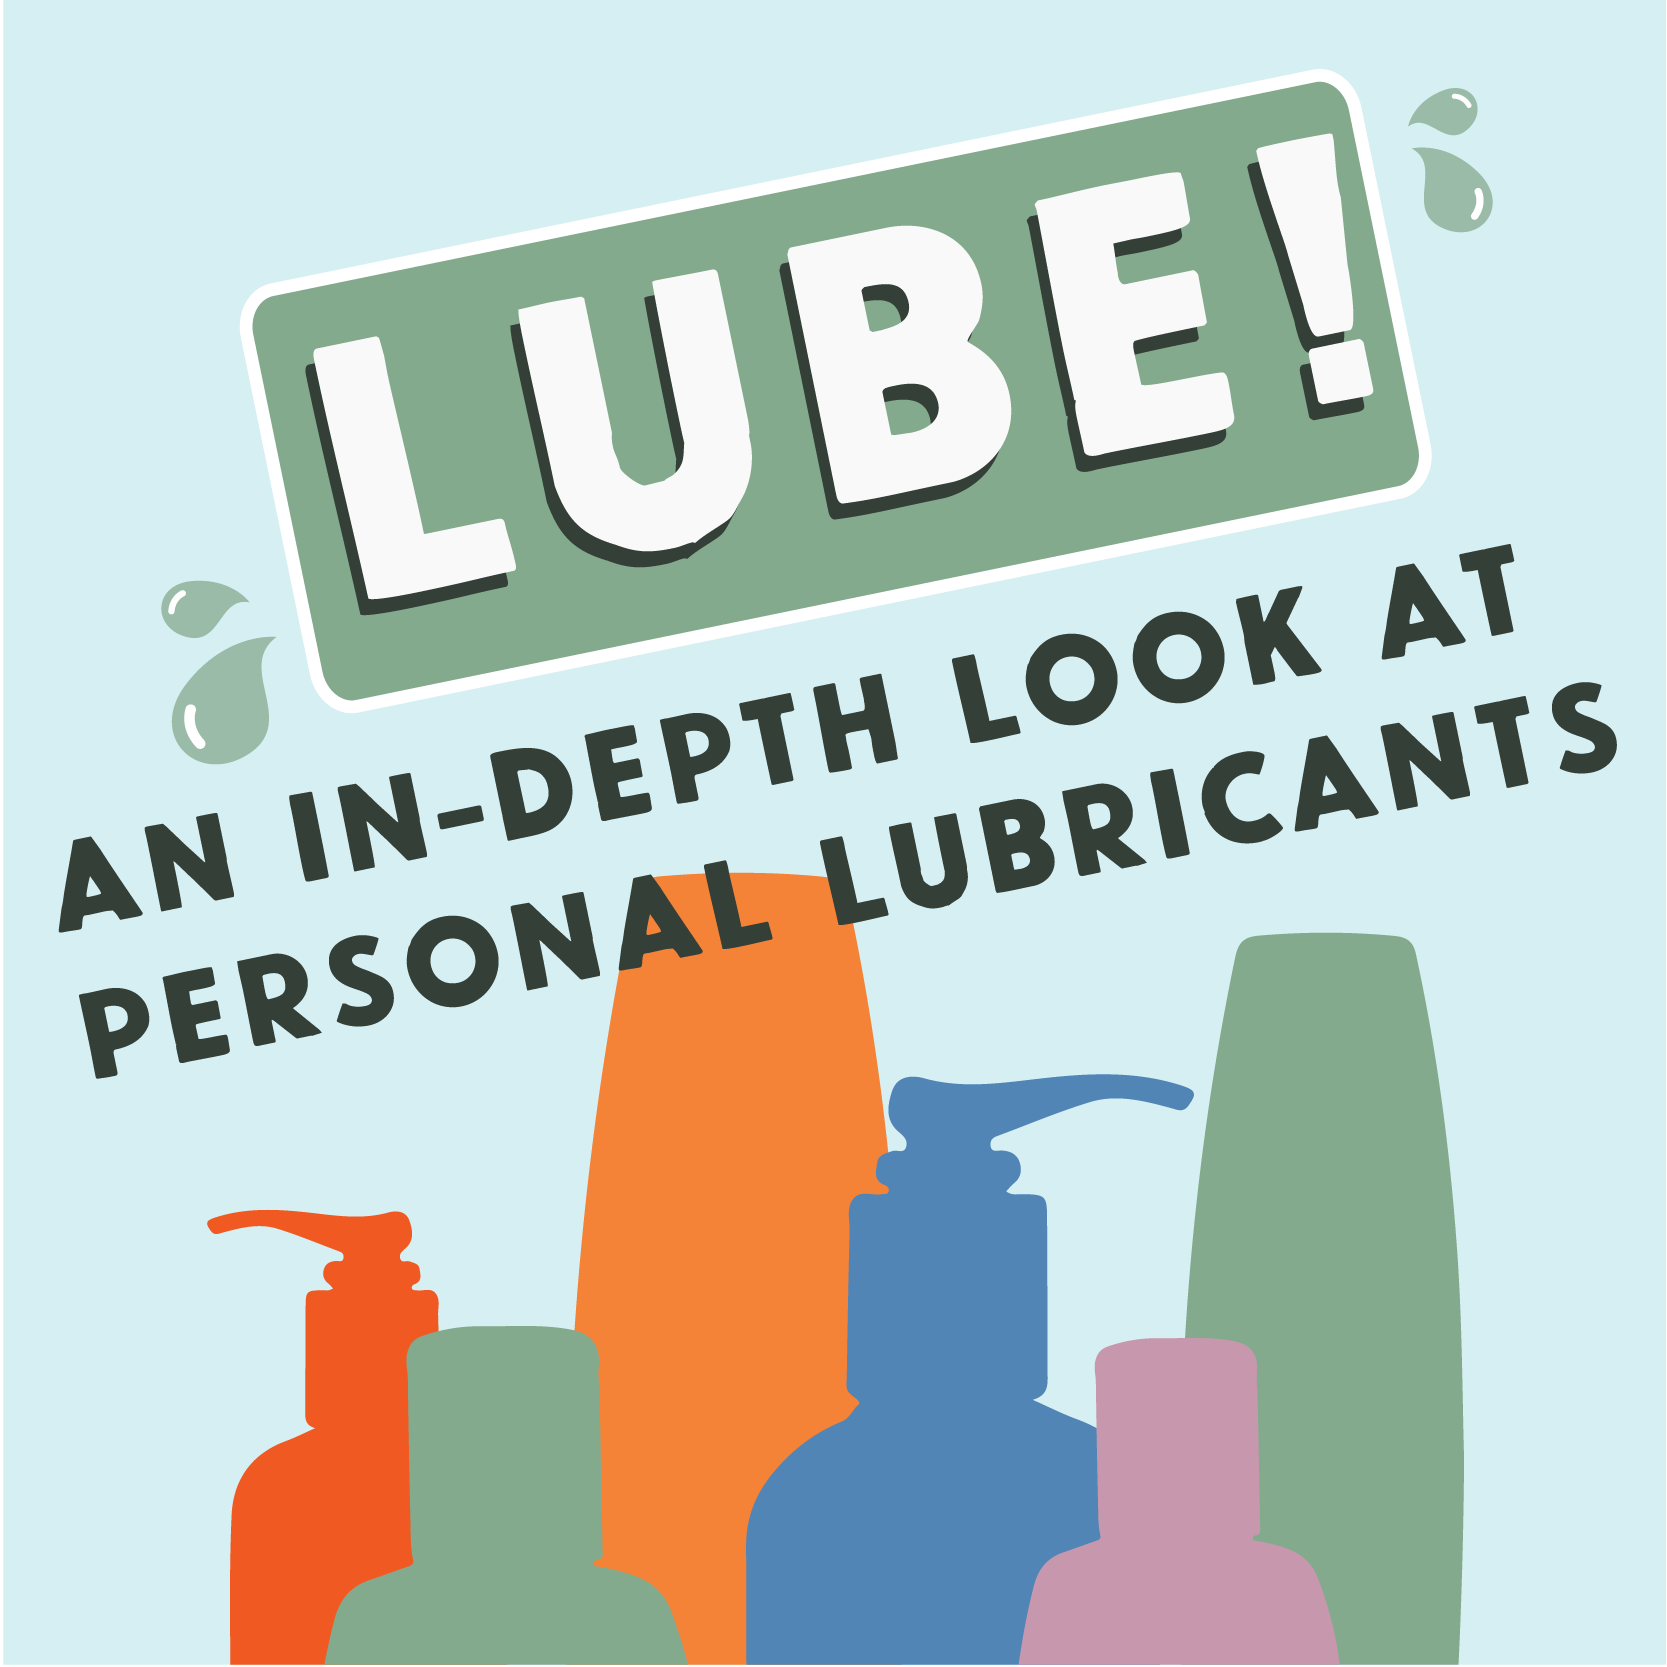 Lube! An in-depth look at personal lubricants.